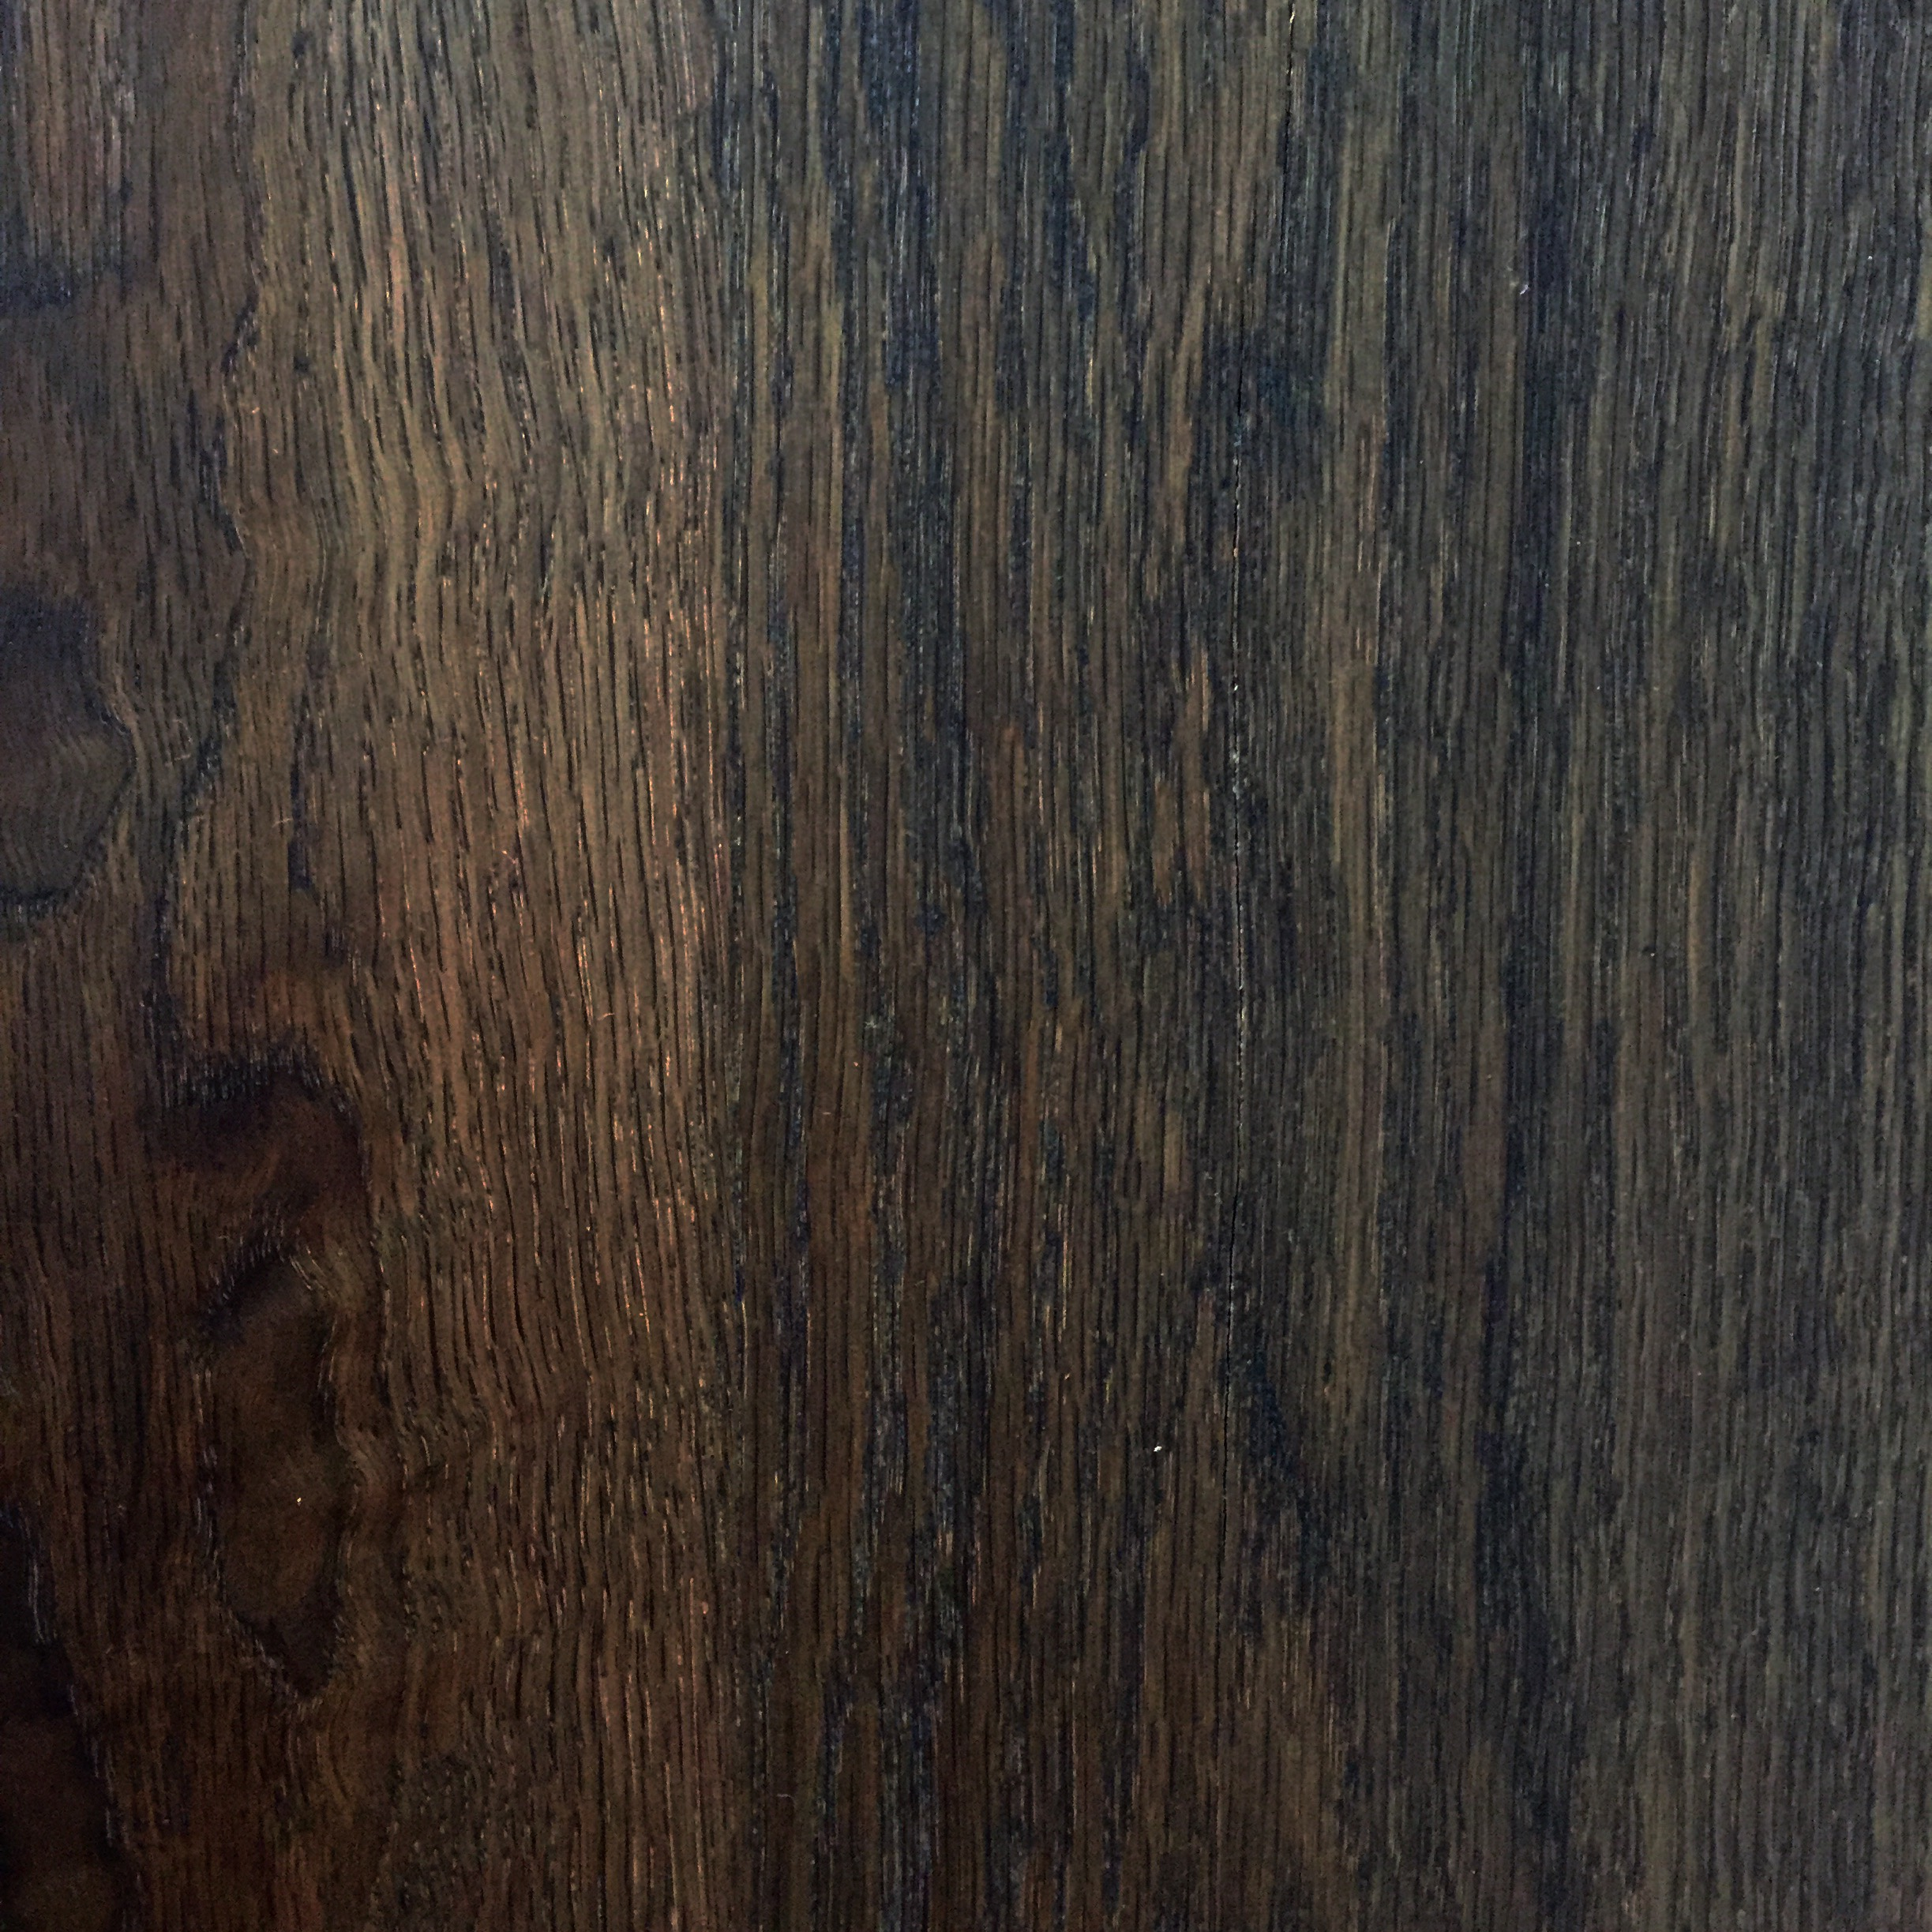 White Oak - Oxidized